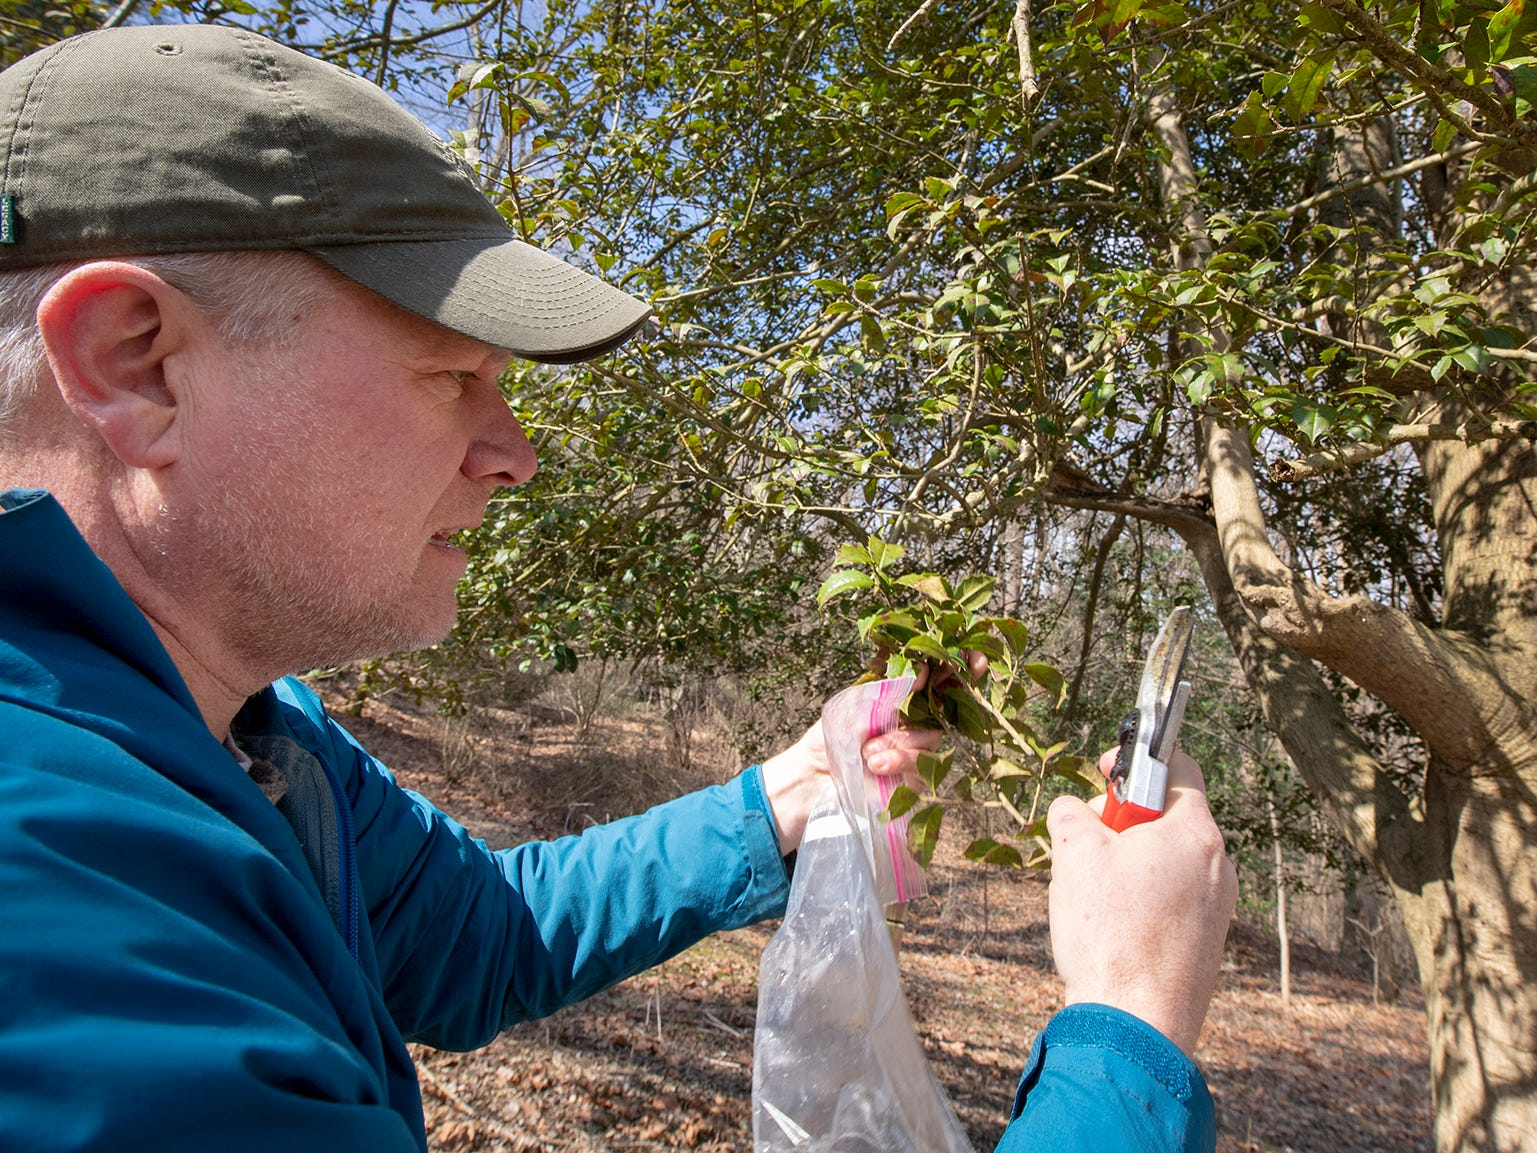 Scott Wade, an arborist from Longwood Gardens, takes a cutting of the American holly tree, believed to be 350 years old. He hopes to root the tree for a collection of famous Pennsylvania trees. The tree is part of the Indian Steps Museum along the Susquehanna River in Lower Chanceford Township.